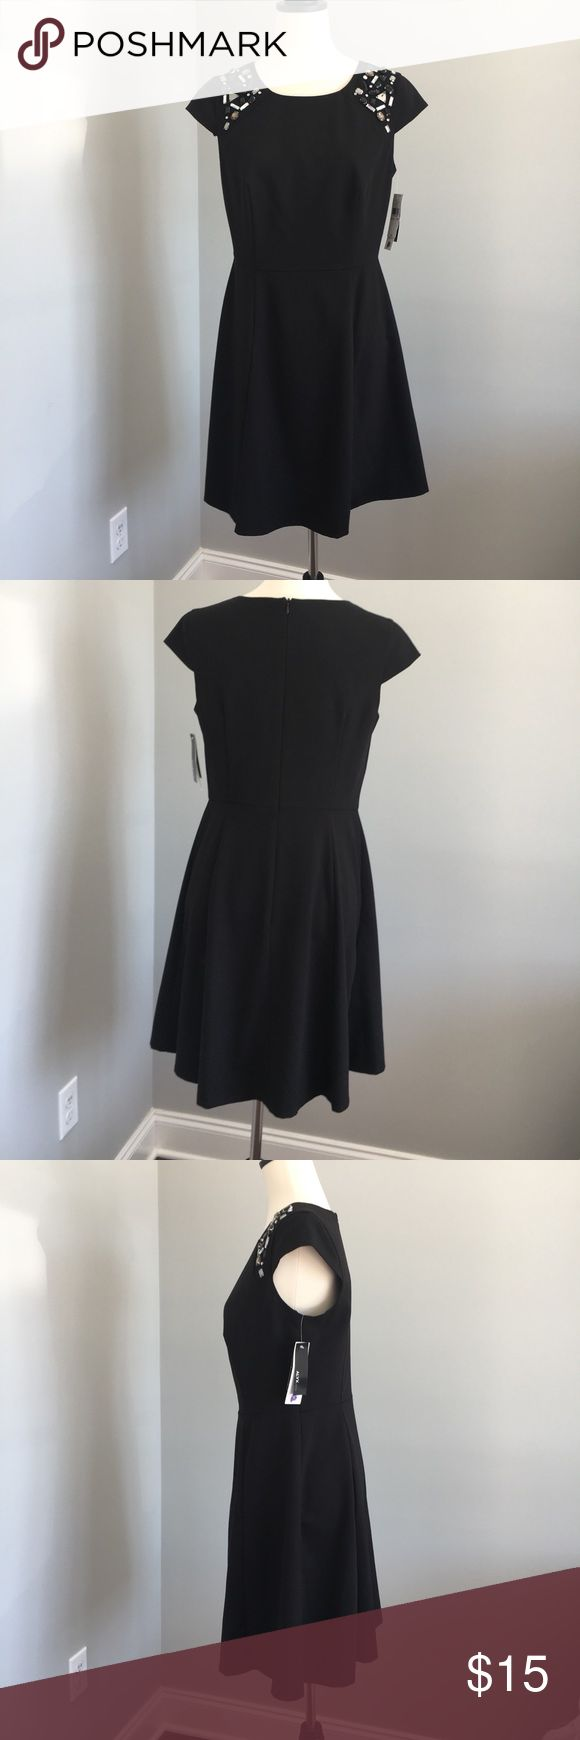 ALYX Cap-Sleeve Petite Black Dress Jewel Accents NWT. ALYX petite black dress has cap sleeves with jewels. Zipper in back. Dress is lined only around the to section of the dress.  63% Polyester 33% Rayon 4% Spandex, lining is 100% Polyester.  Do not dry clean. Hand wash cold and line dry. Alyx Dresses